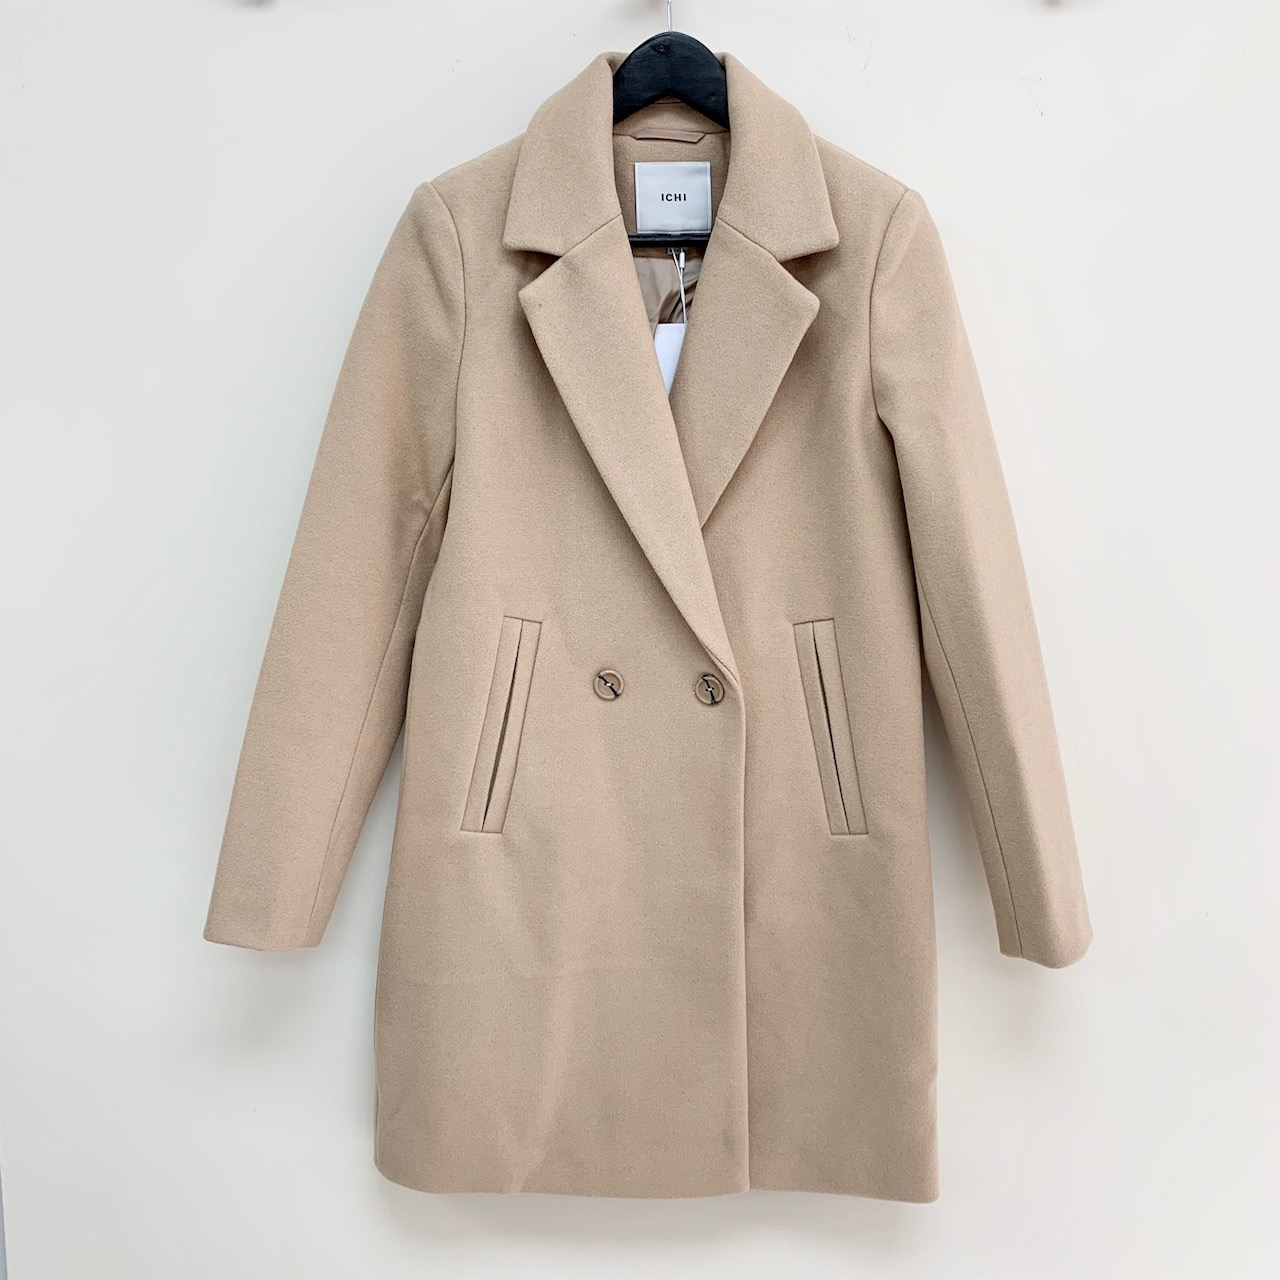 SALE Jannet (Jackson) Jacket - Camel was £84.99